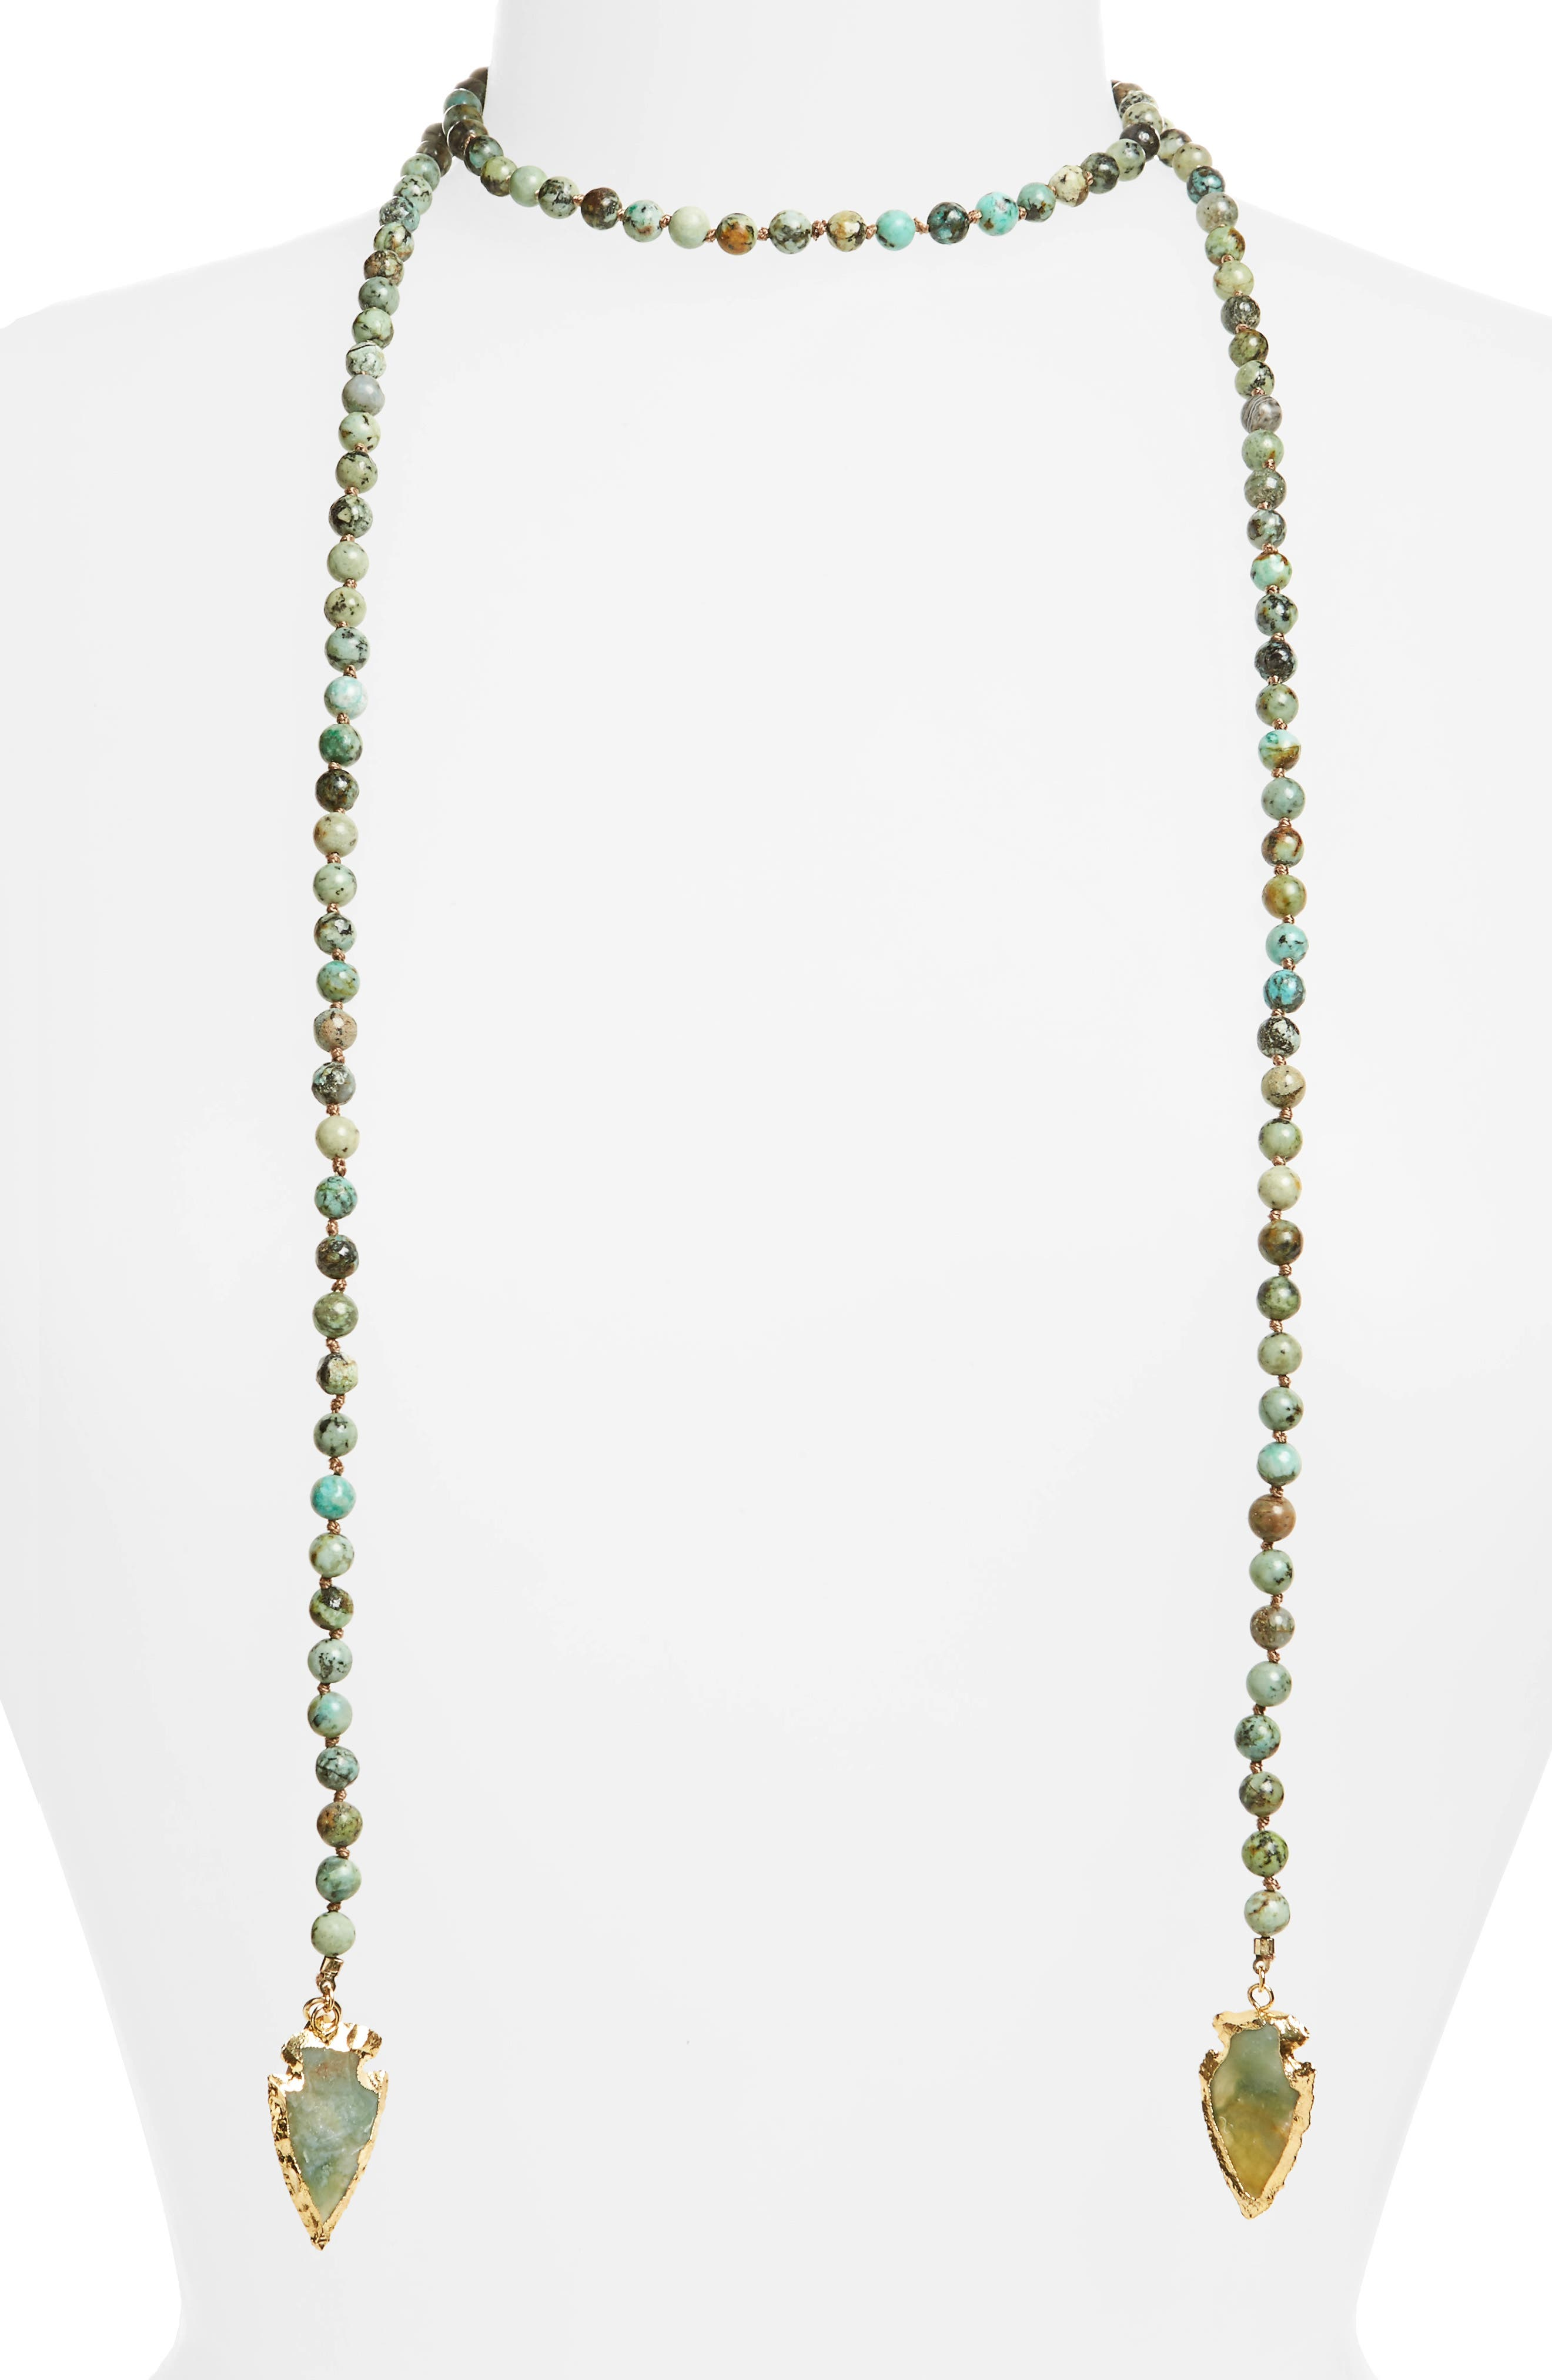 Main Image - Love's Affect Knotted Semiprecious Wrap Necklace